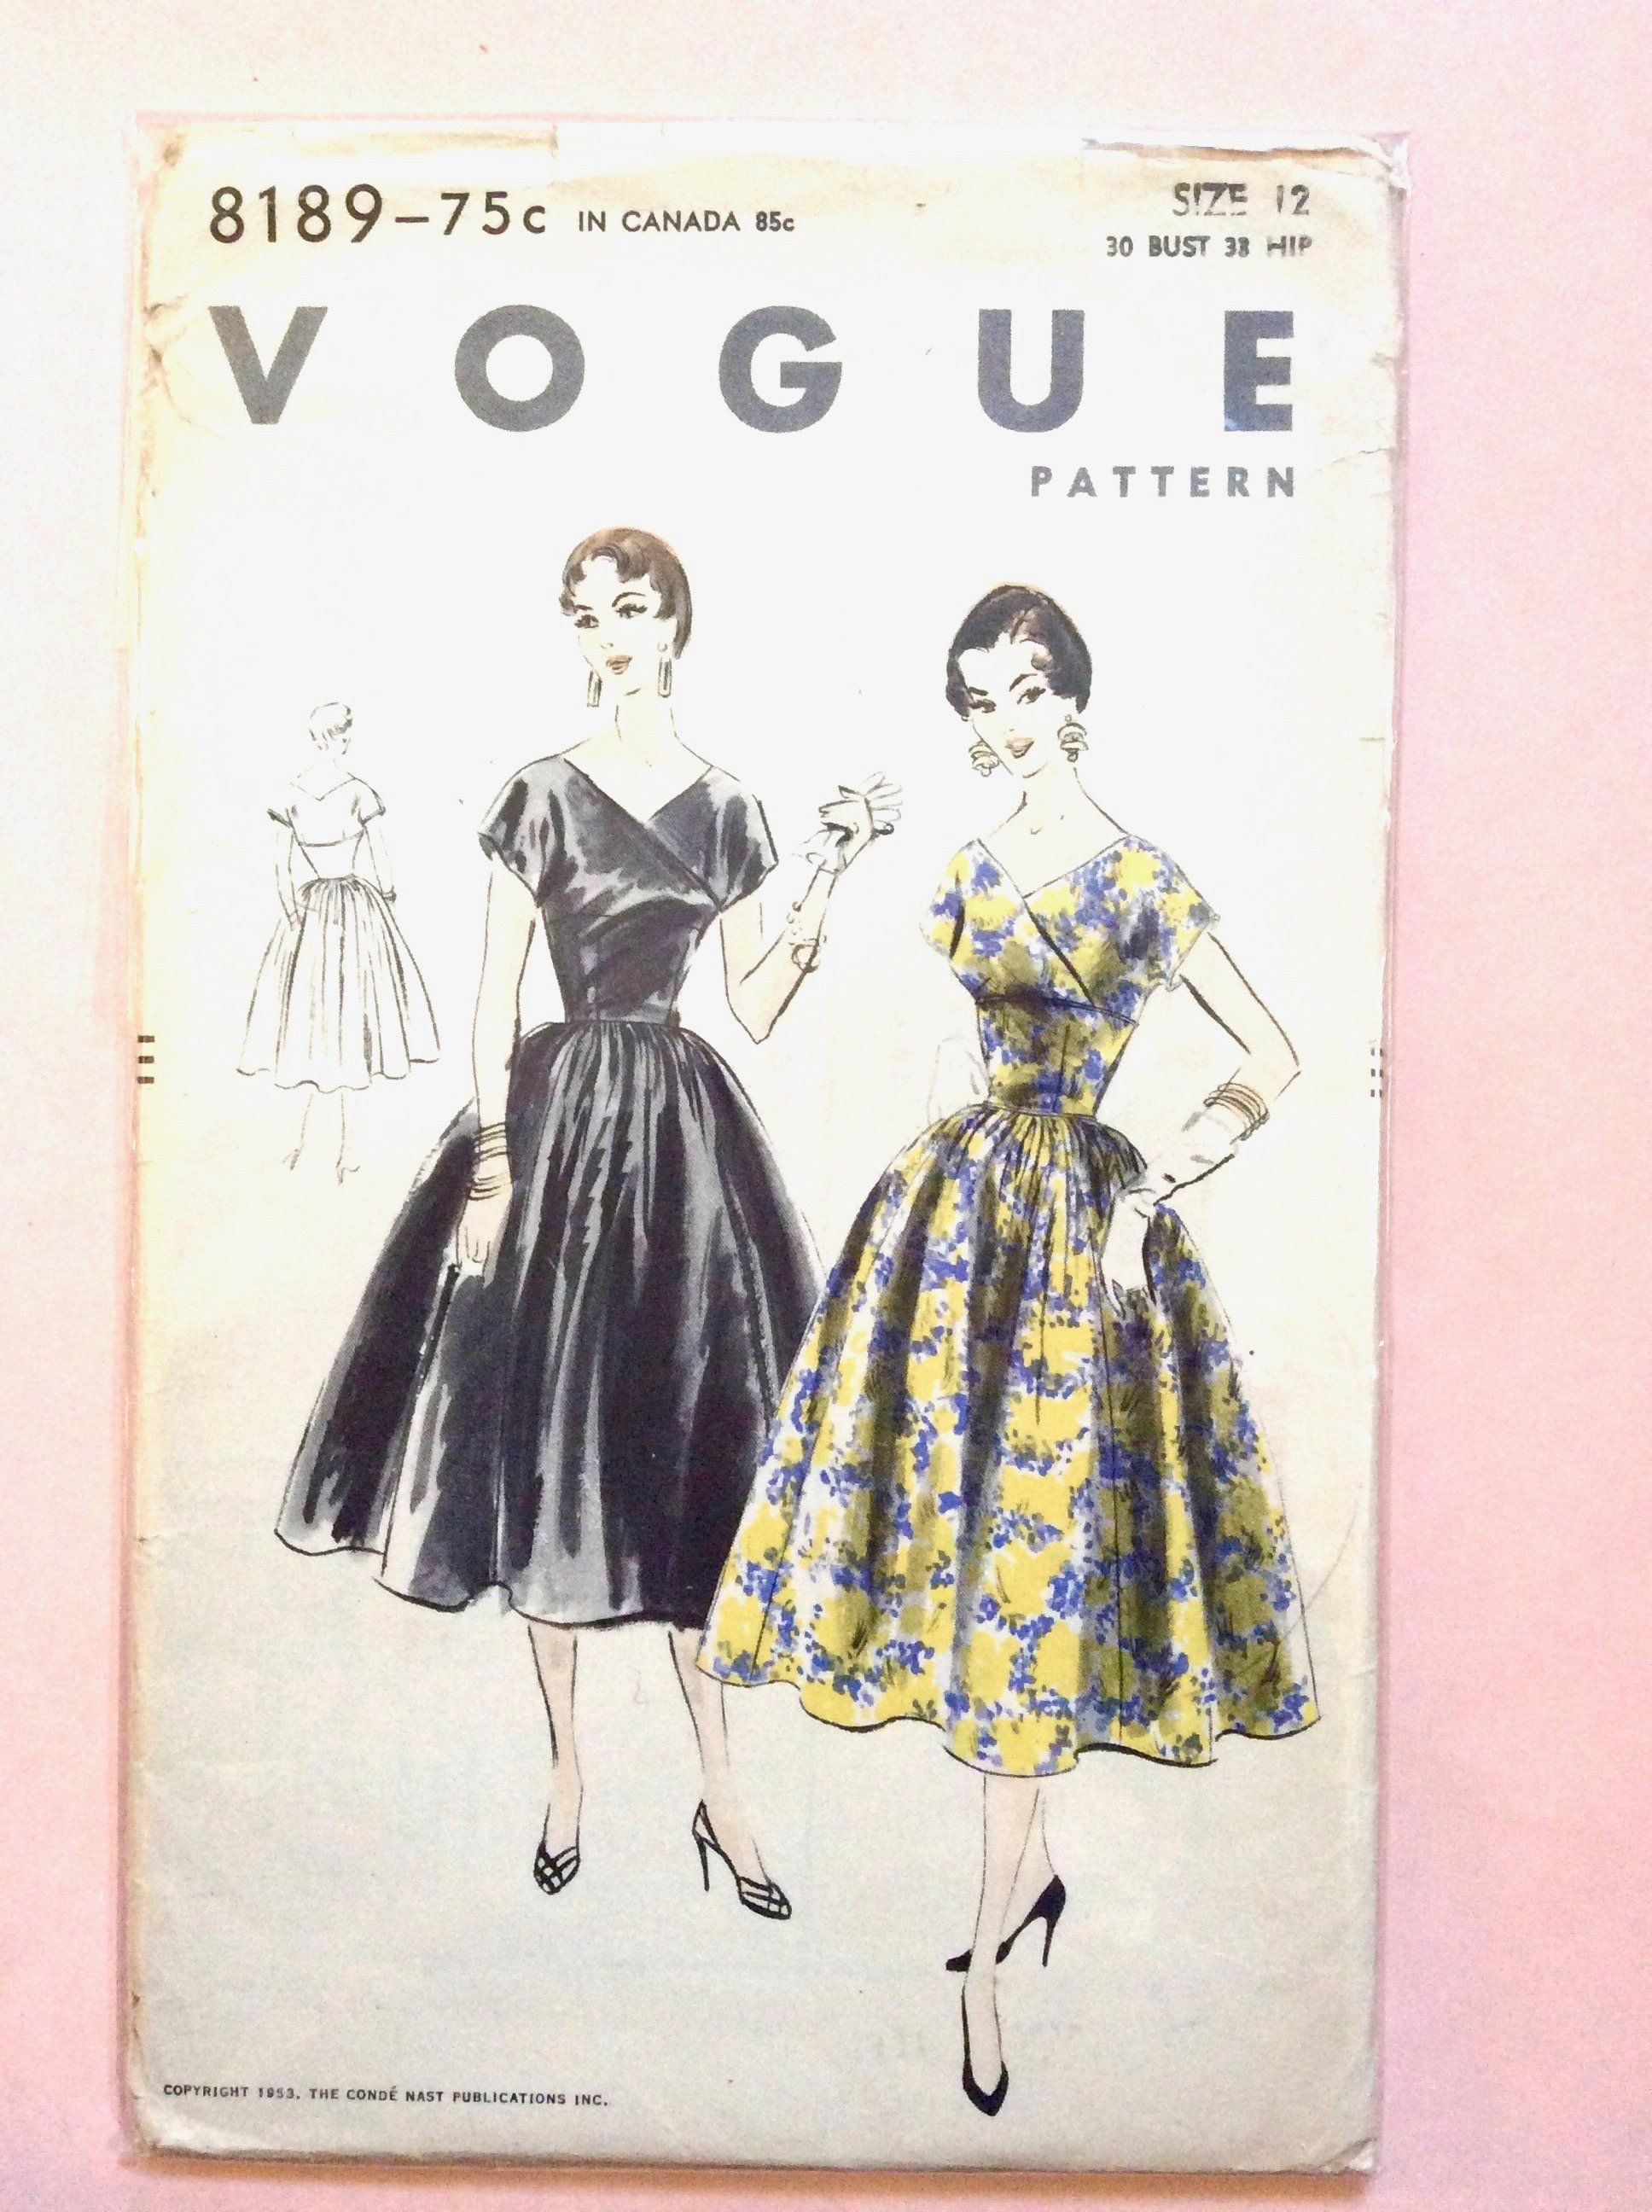 Vogue 8189 1950s Wrap Dress Pattern Bust 30 Hip 33 Inches Vintage Sewing Pattern [ 2592 x 1936 Pixel ]